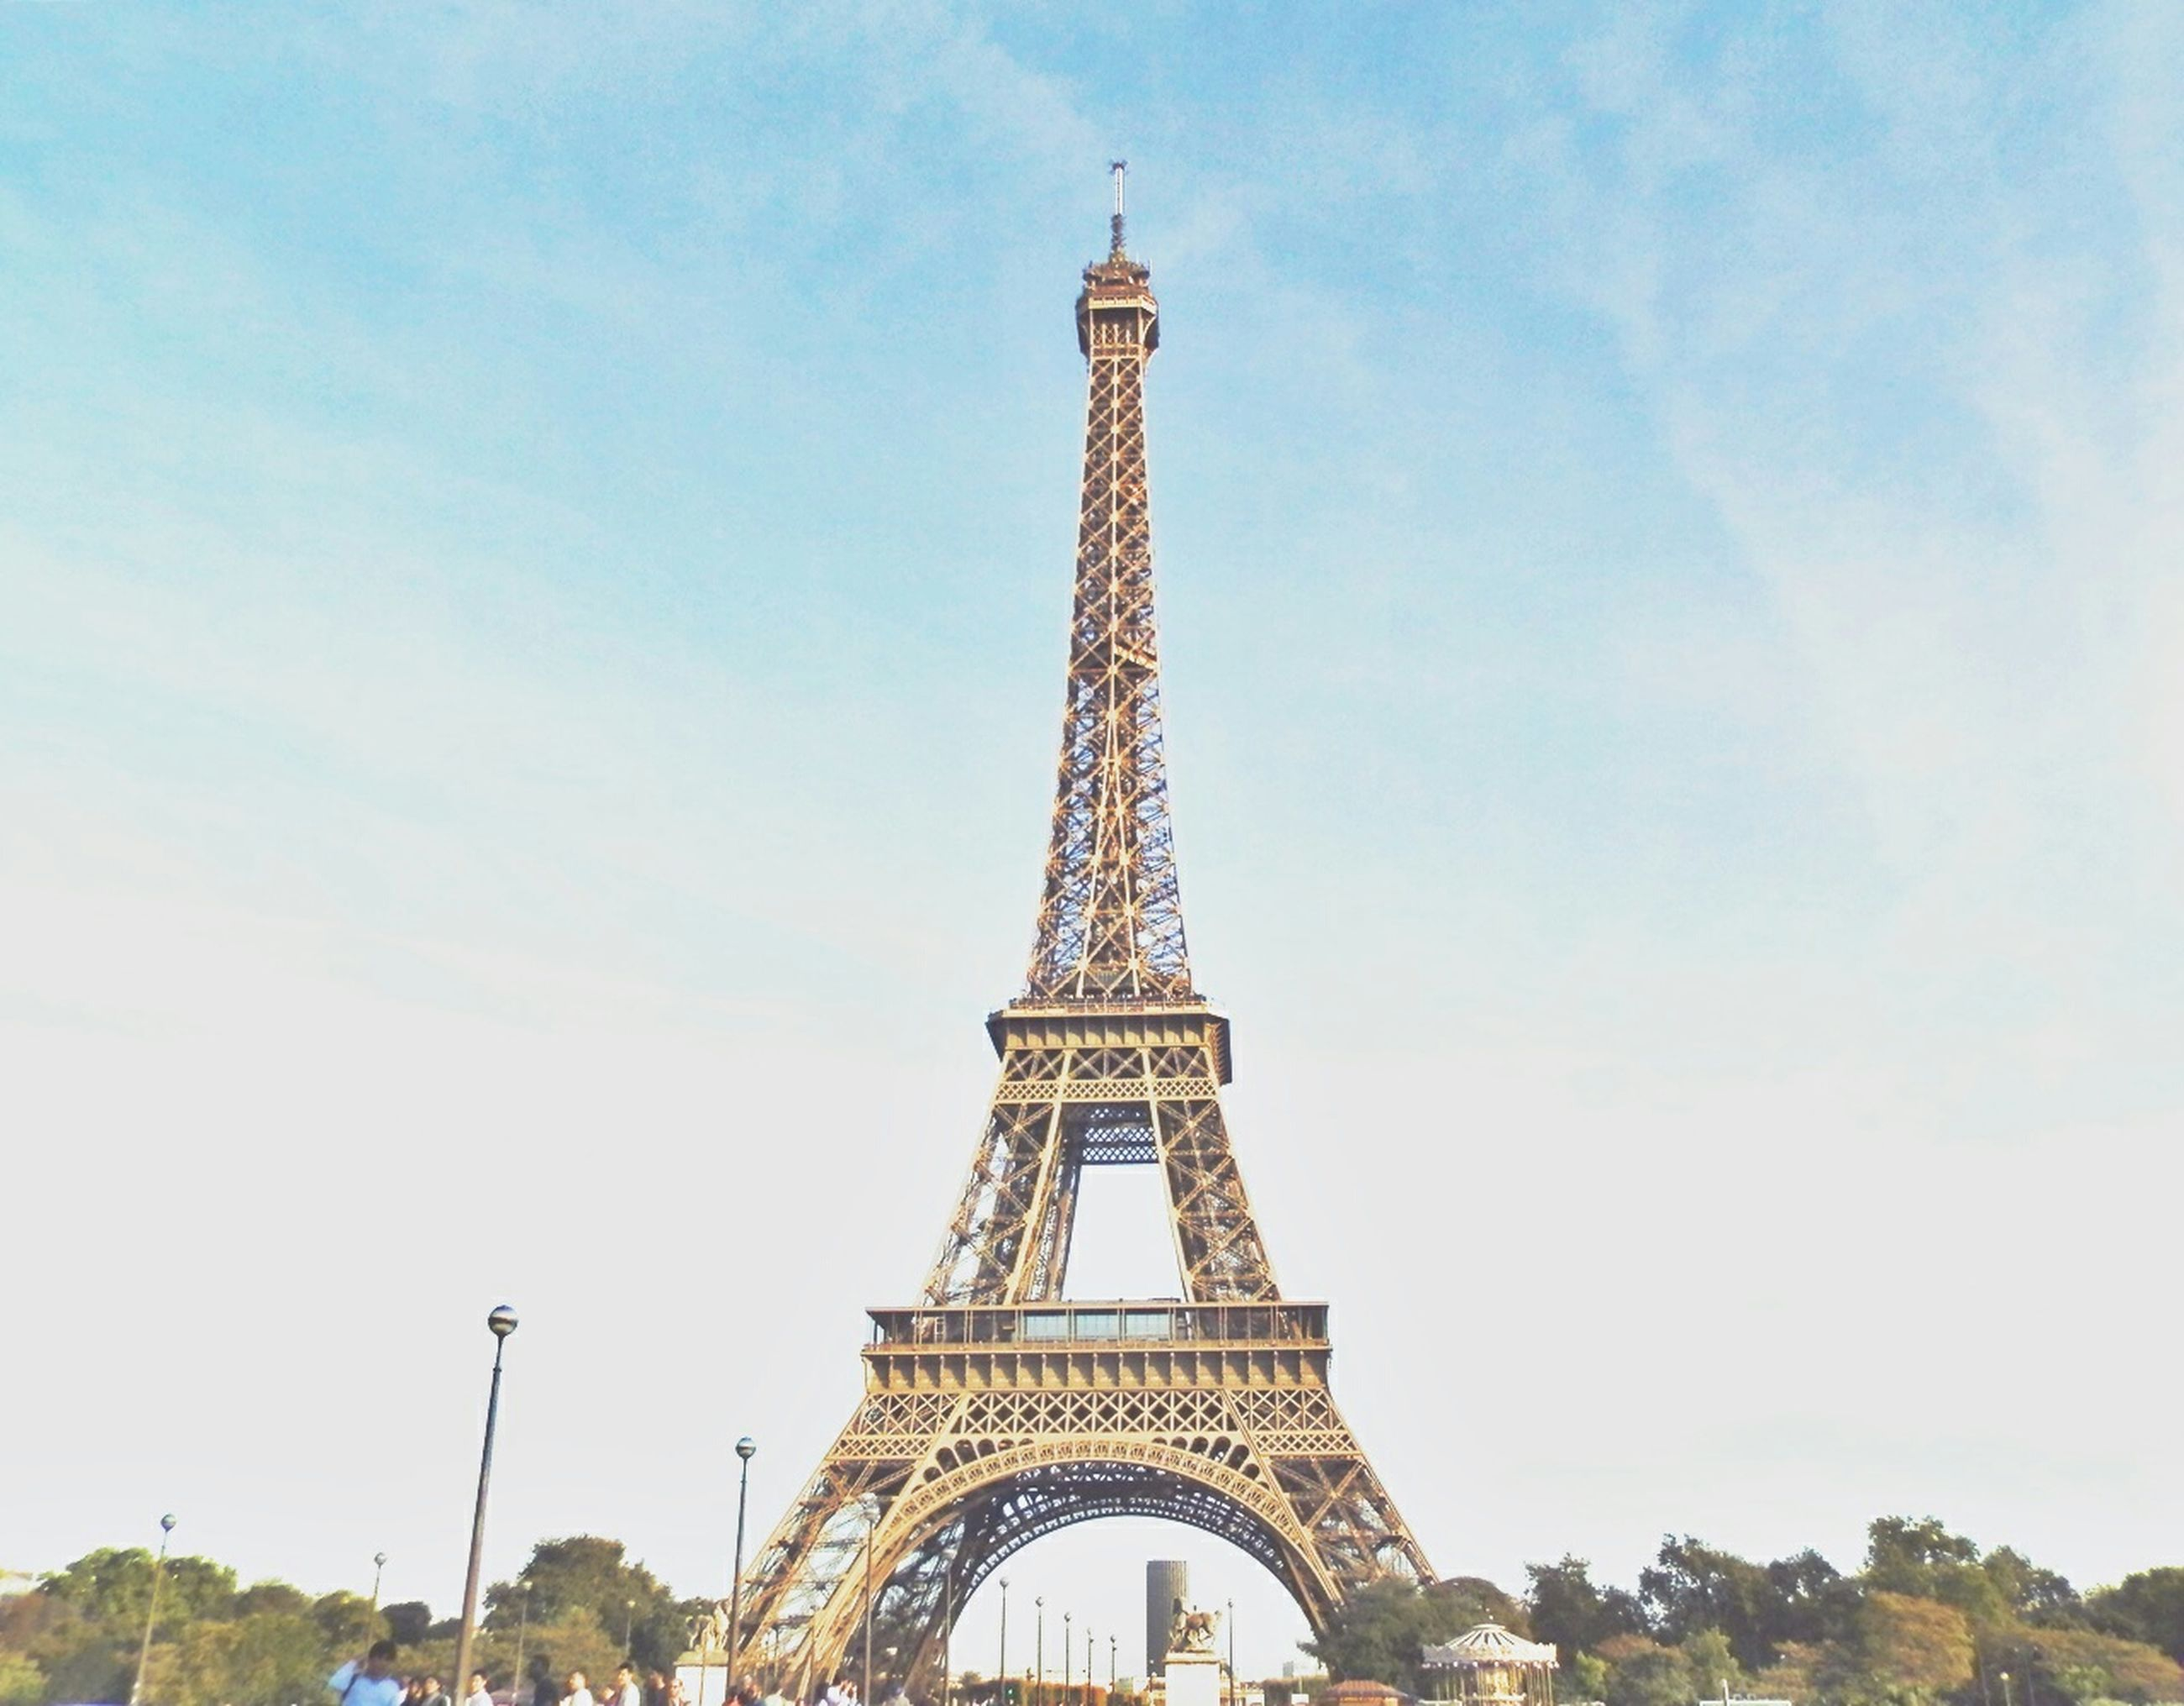 eiffel tower, tower, architecture, famous place, built structure, international landmark, travel destinations, tall - high, tourism, capital cities, sky, culture, travel, low angle view, history, metal, building exterior, architectural feature, tree, city